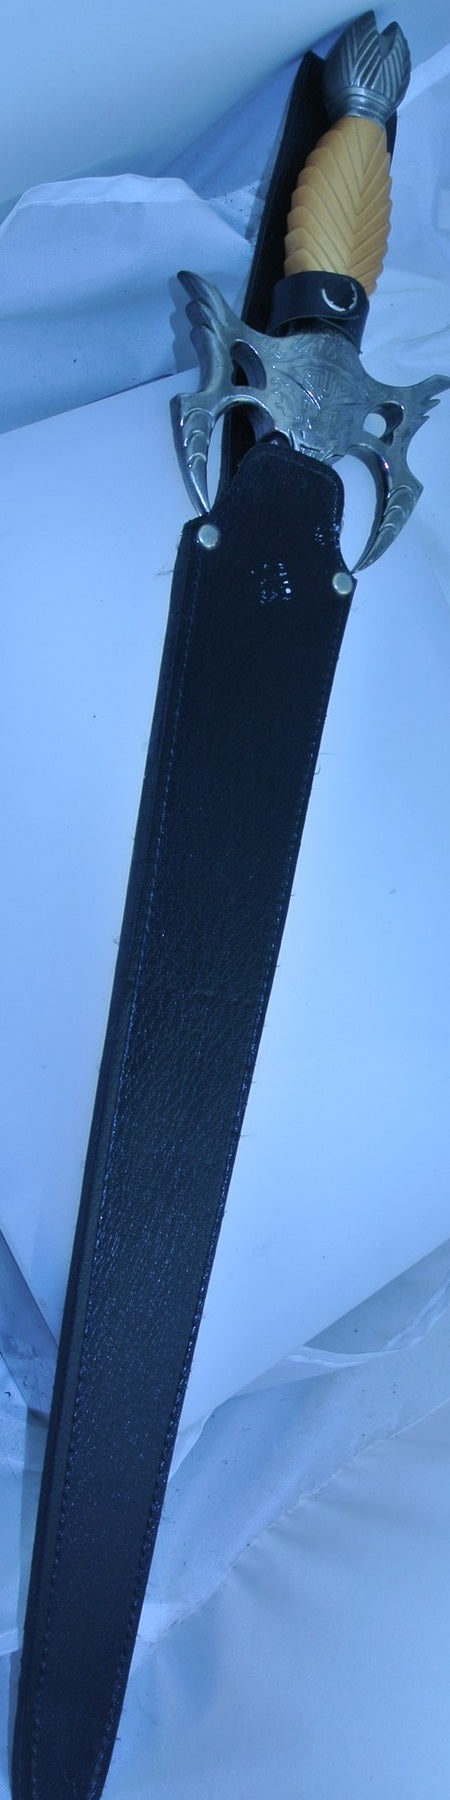 GENUINE REAL AUTHENTIC SCA RENAISSANCE SWARDS SWORD CUTLASS KATANA WITH BLACK FAUX LEATHER SHEATH SCABBARD - MASS PRODUCED